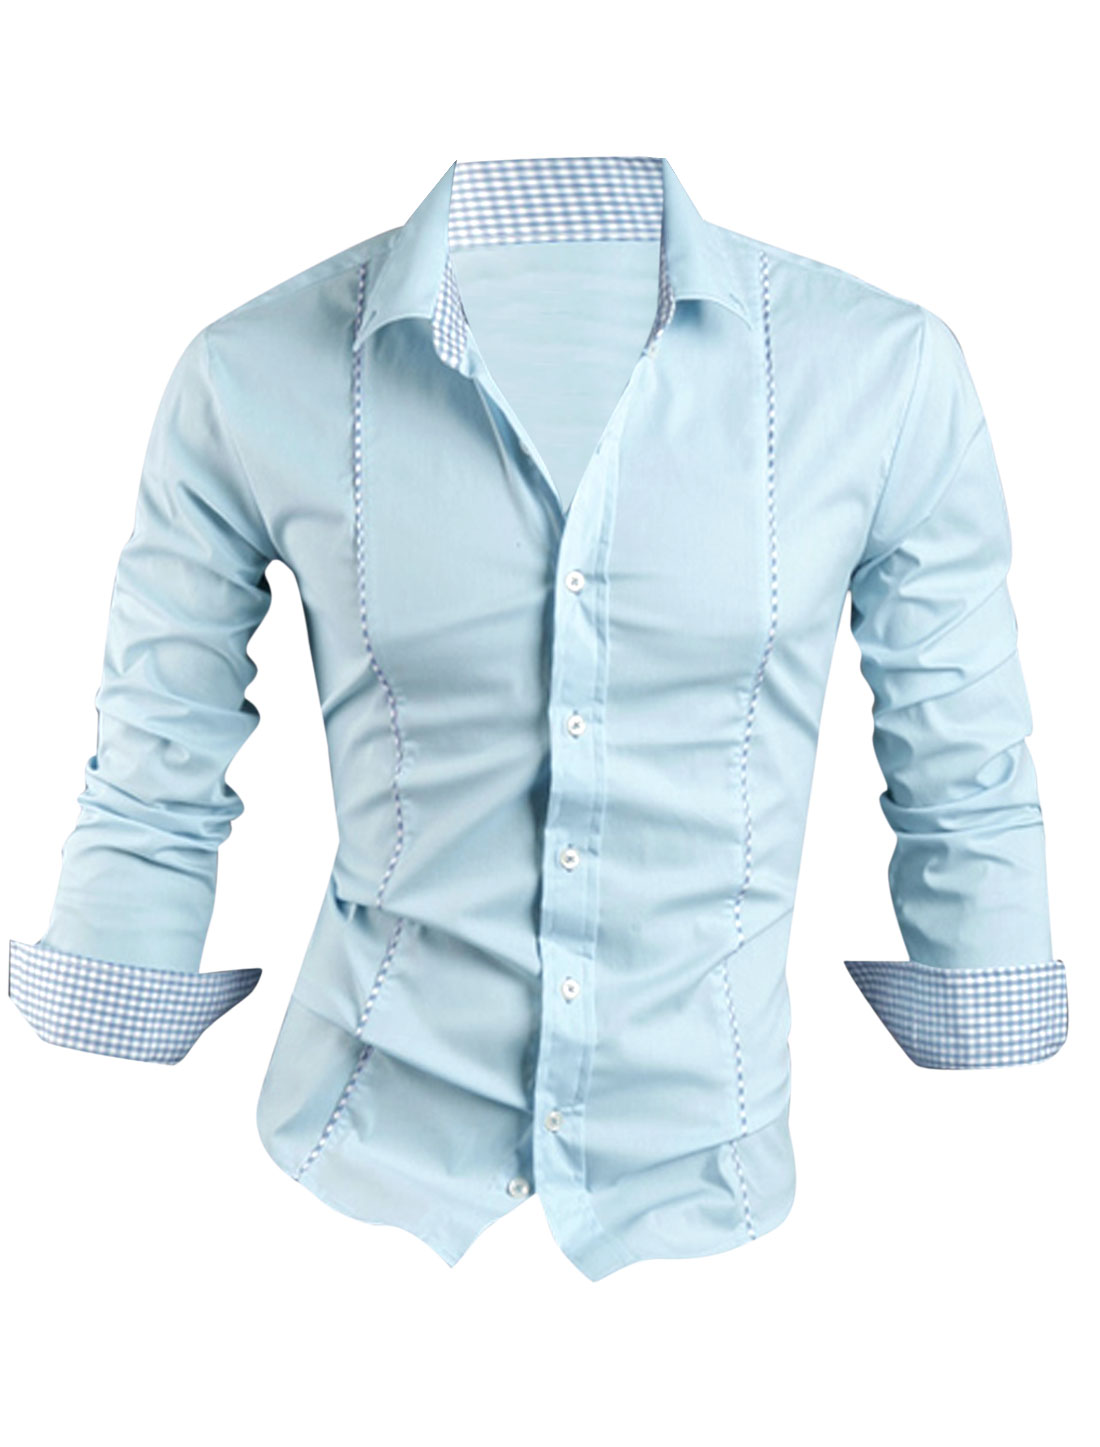 Men Point Collar Buttoned Cuffs Single Breasted Casual Shirt Light Blue M